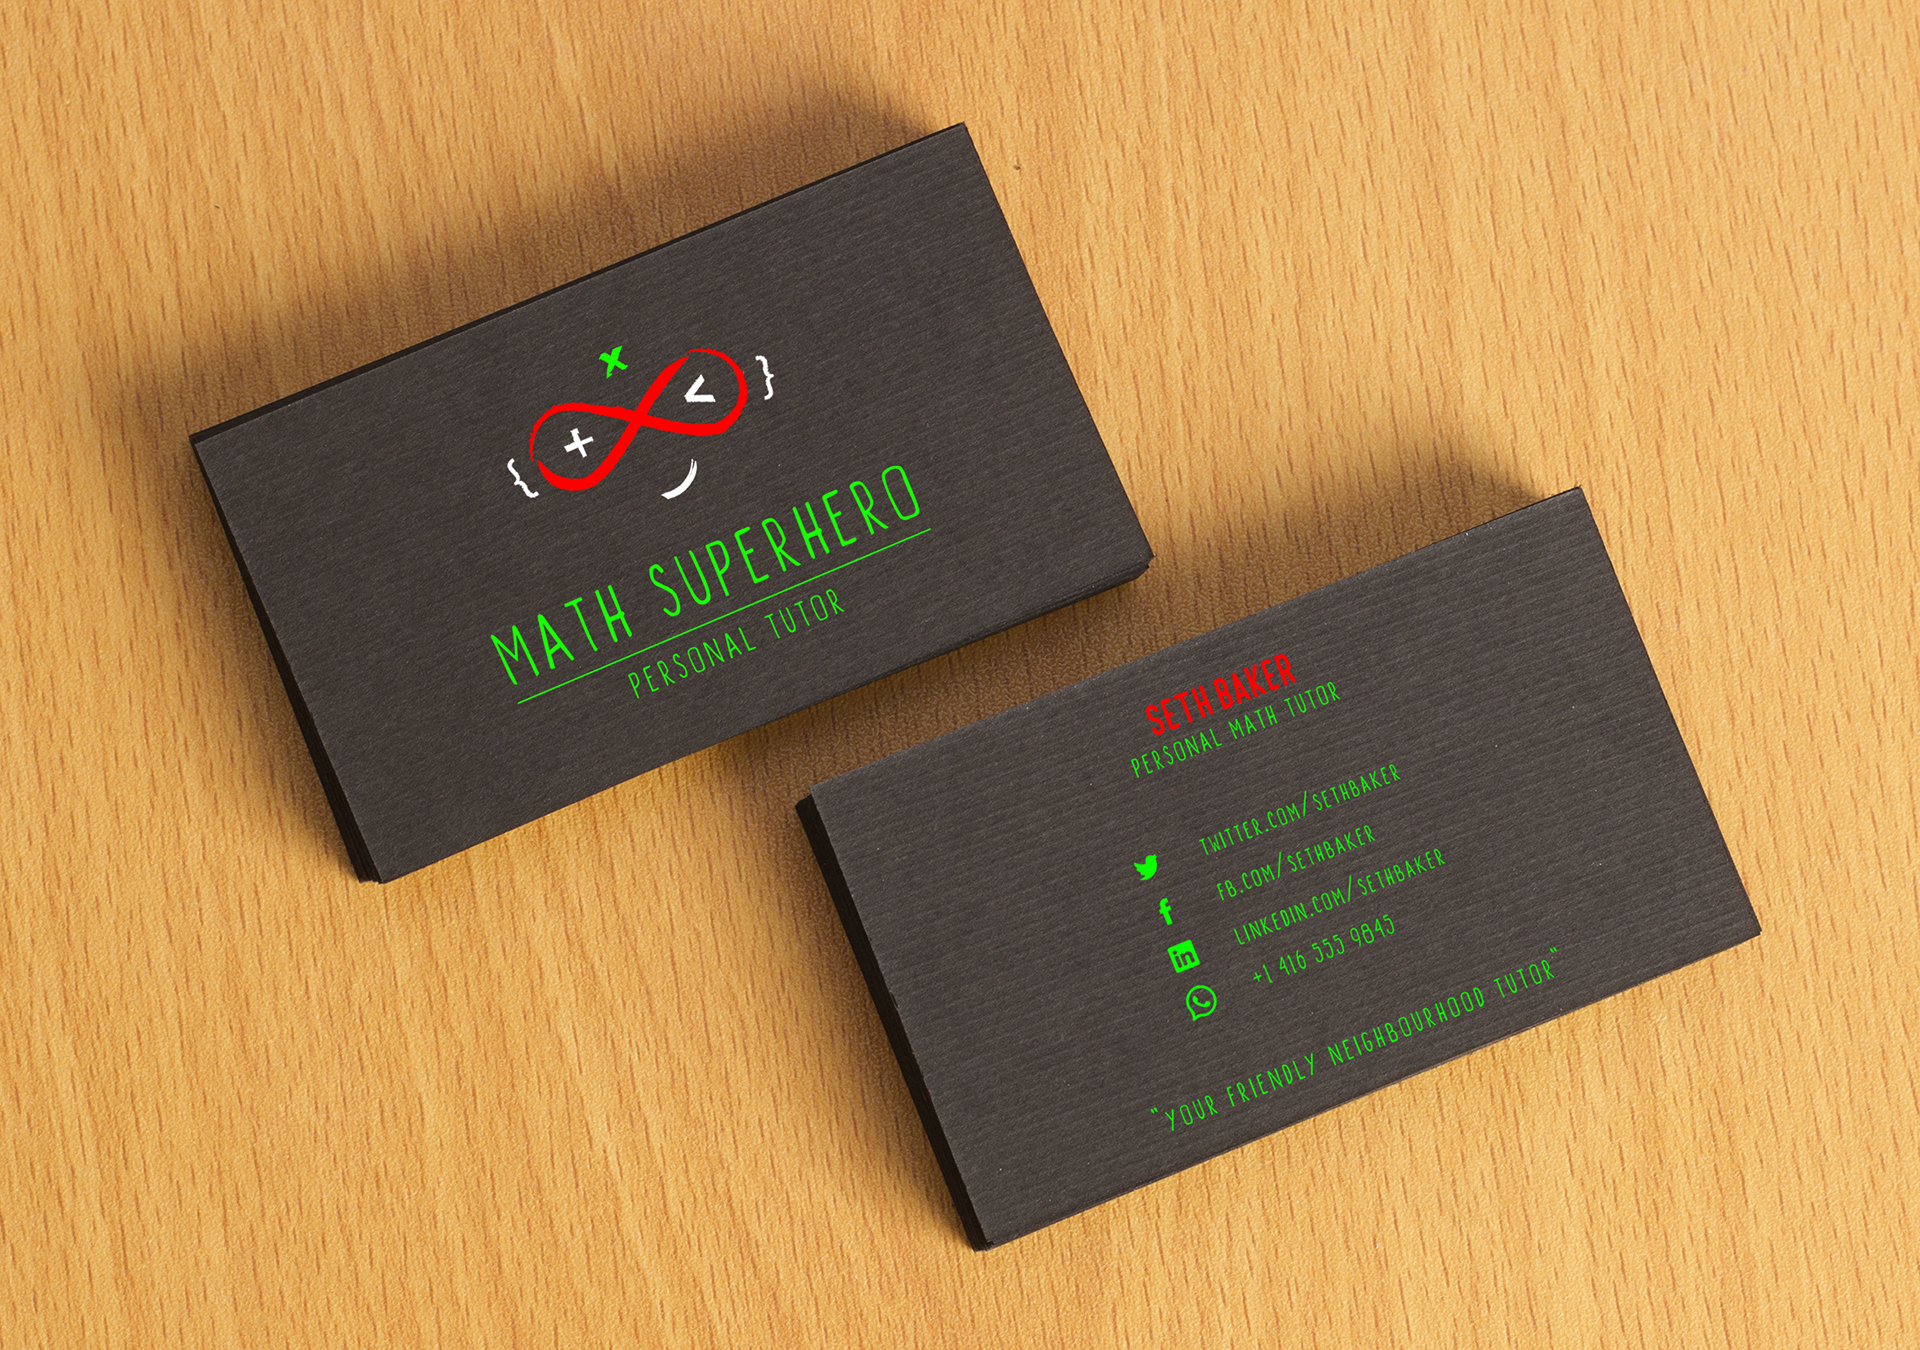 Mariospagolla math superhero your friendly neighbourhood tutor on the business card reminds a quote from the movie spiderman colourmoves